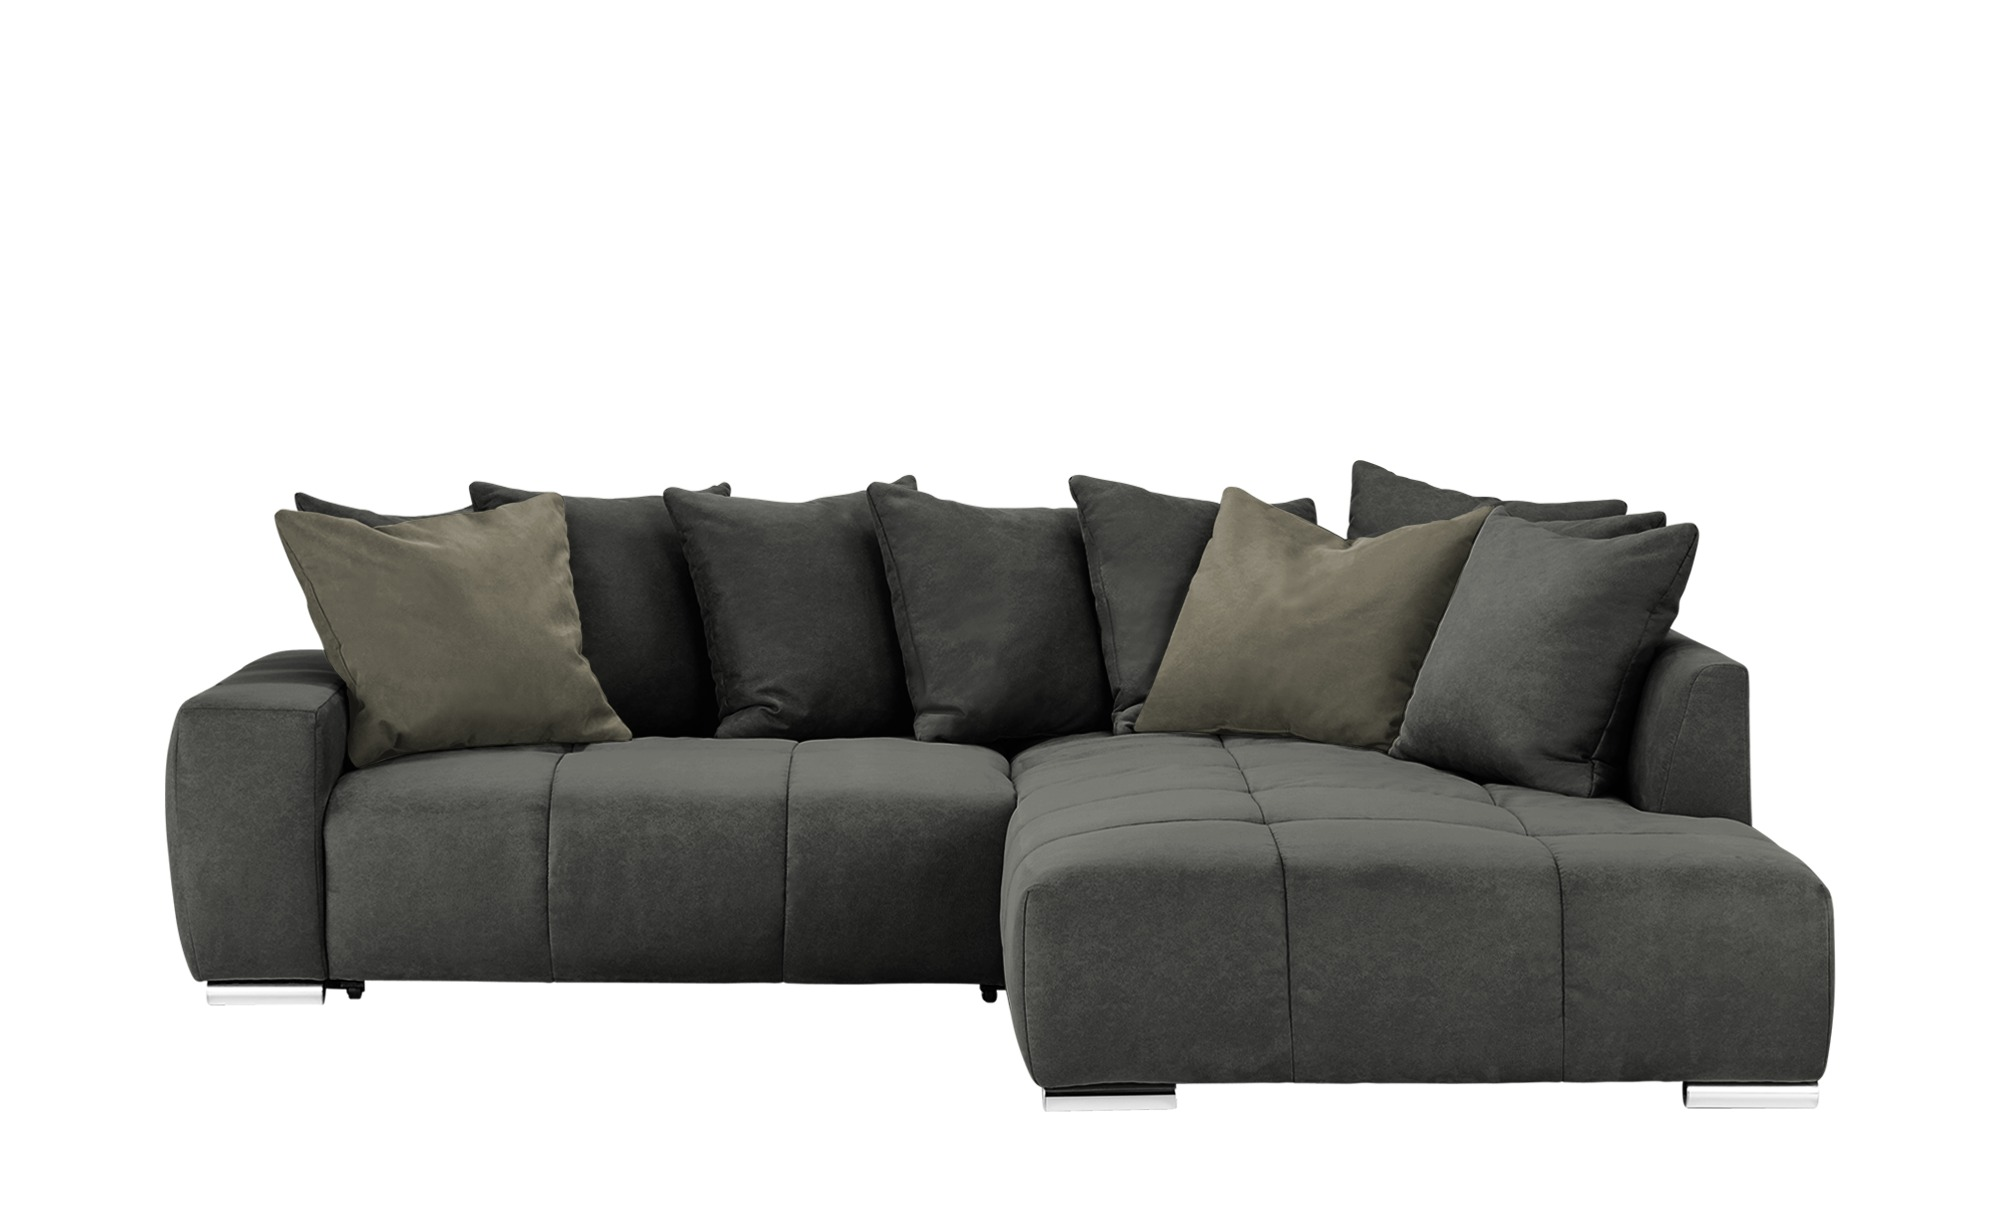 bobb ecksofa dunja breite h he 88 cm grau online kaufen bei woonio. Black Bedroom Furniture Sets. Home Design Ideas